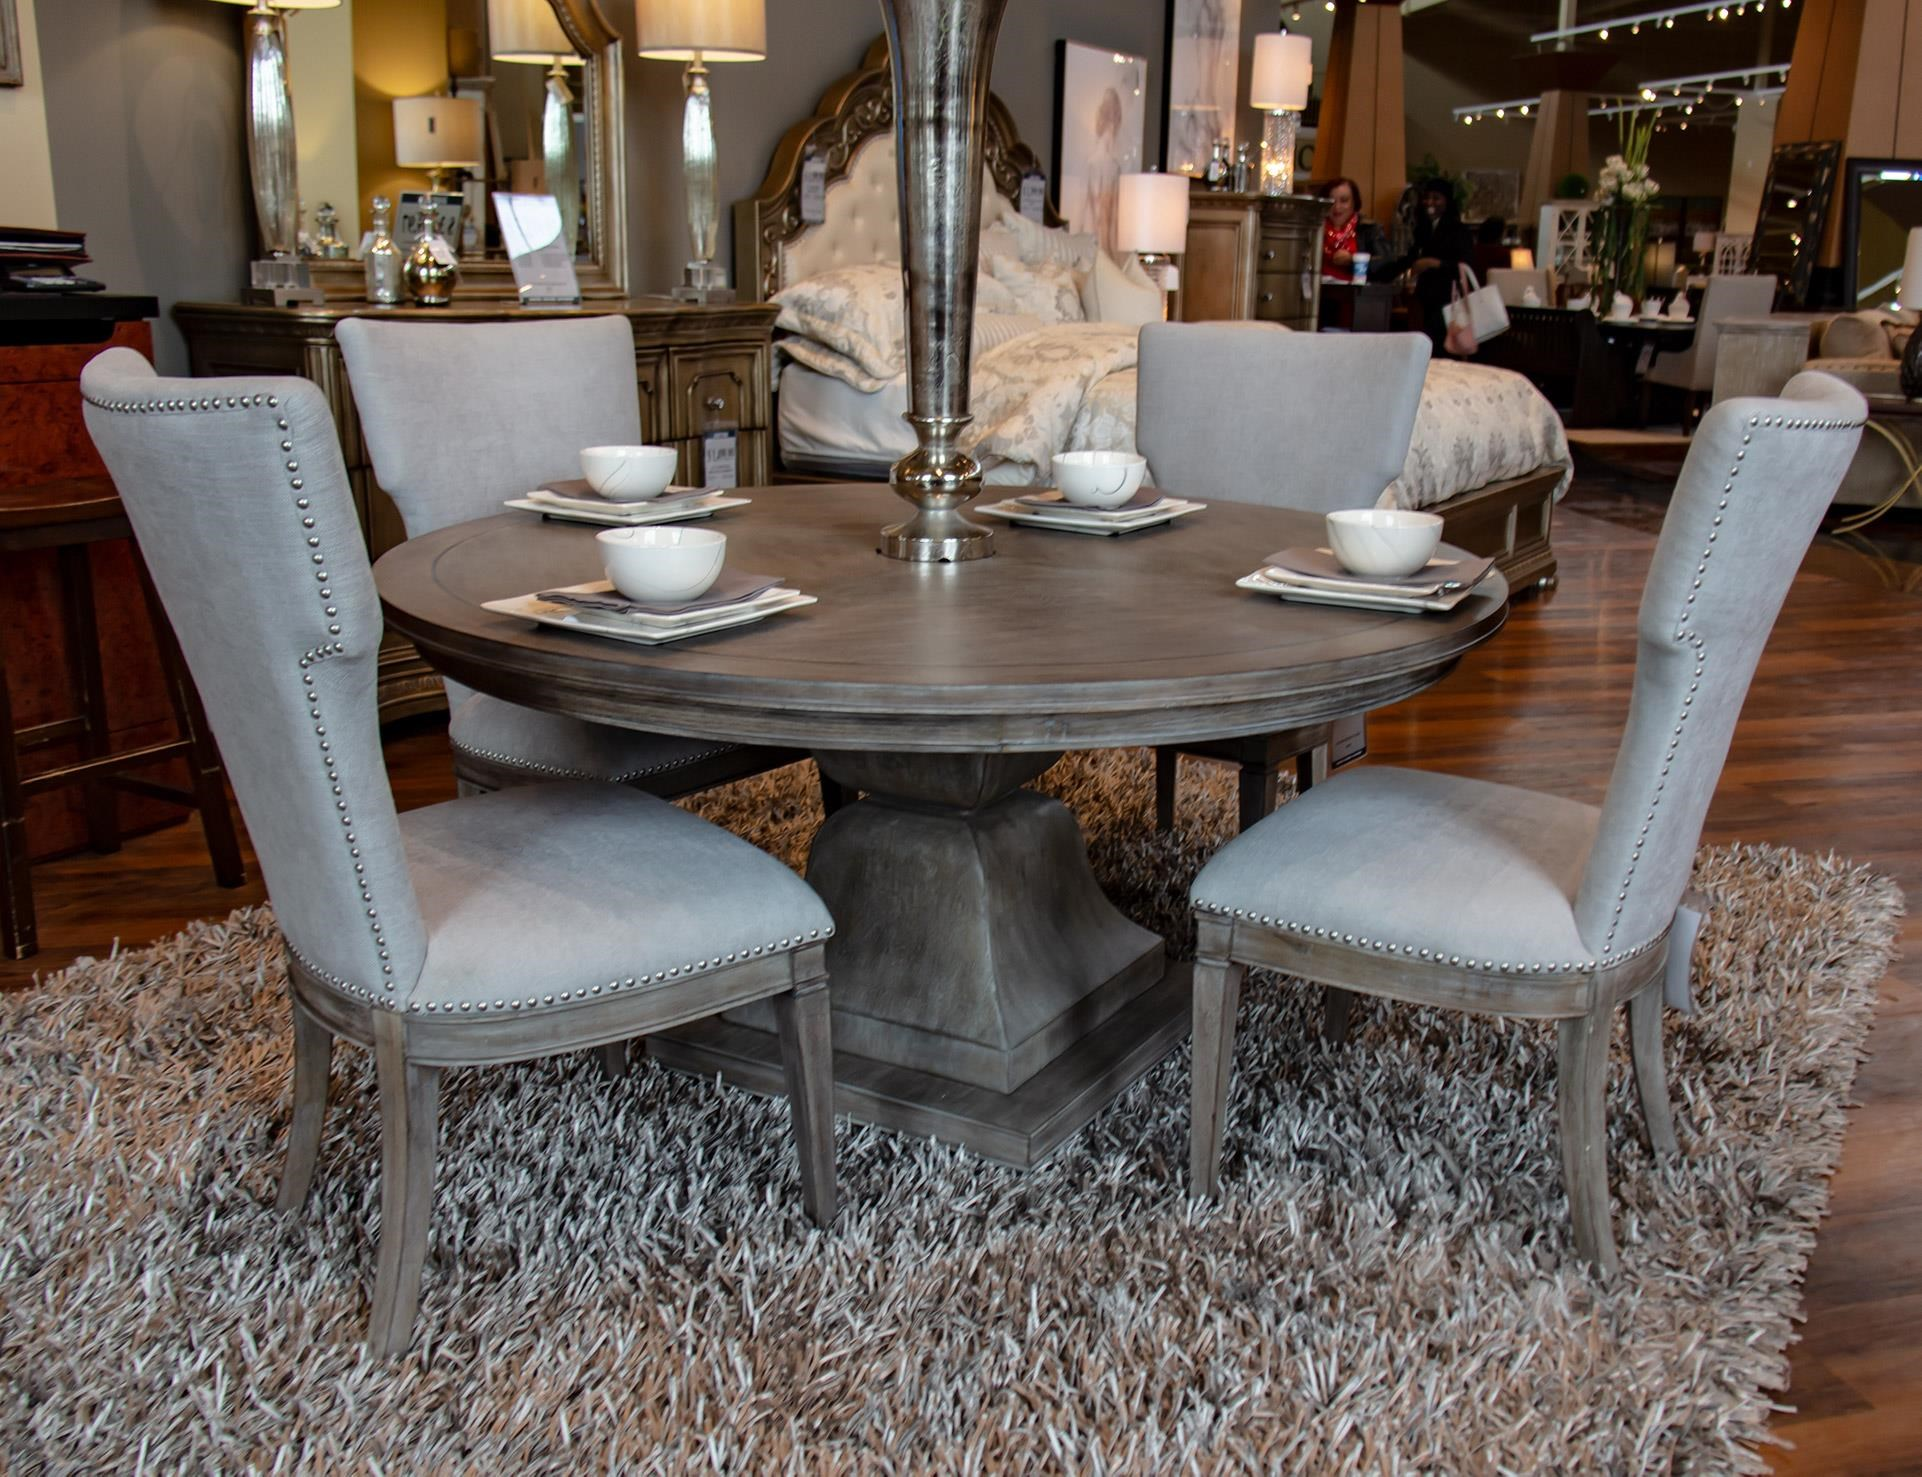 Pedestal Table & 4 Chairs